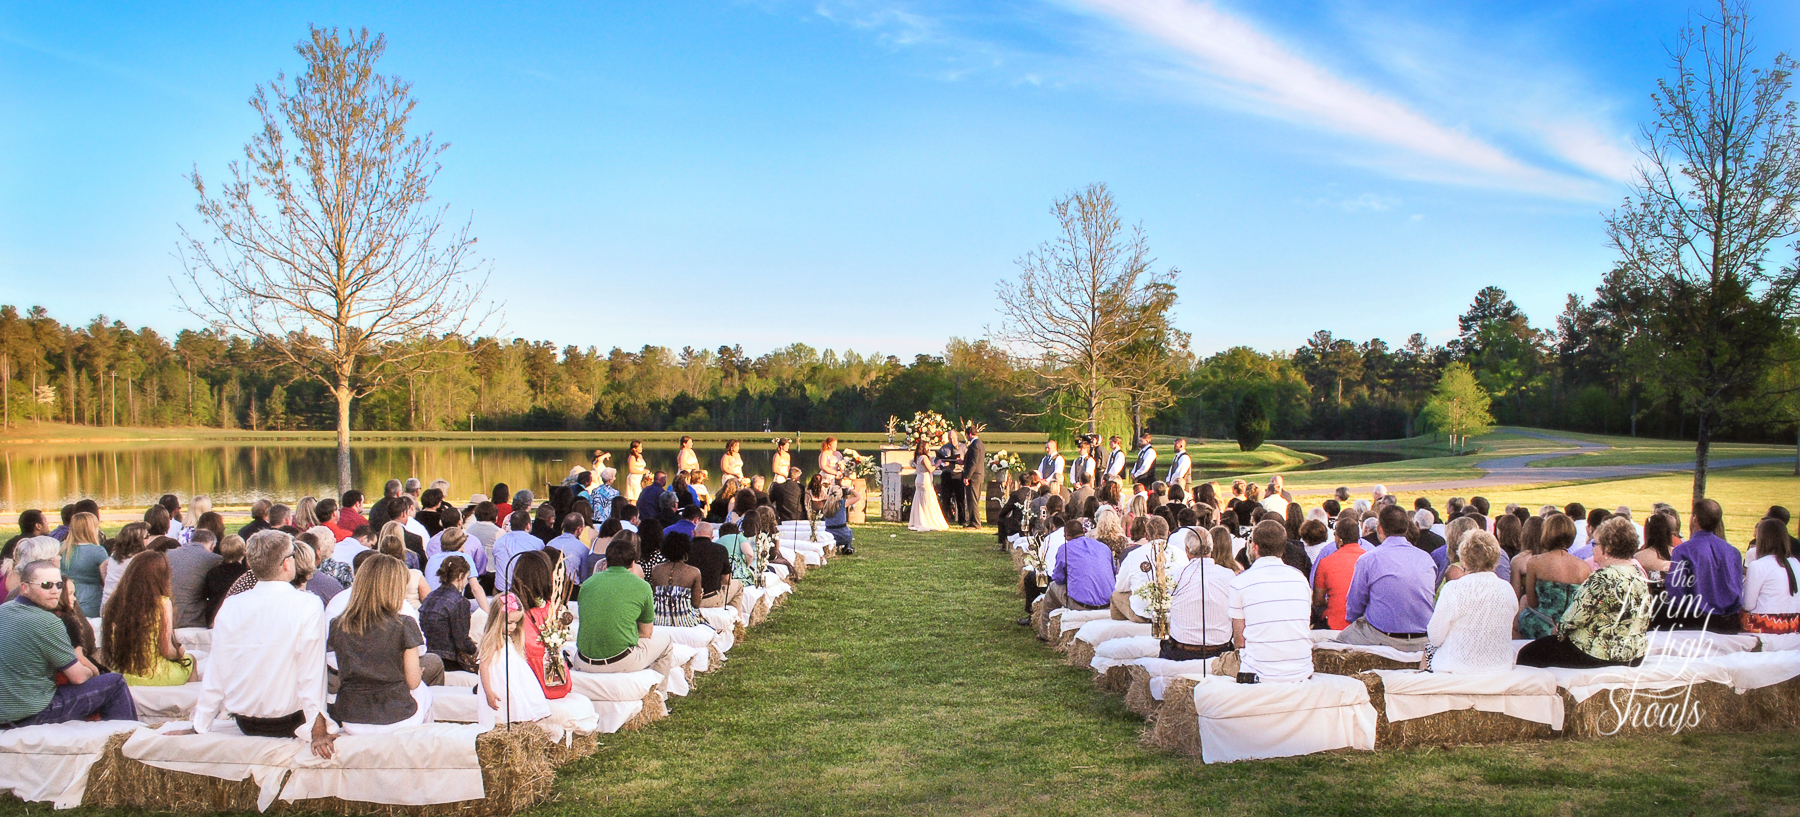 The Farm at High Shoals Barn Weddings